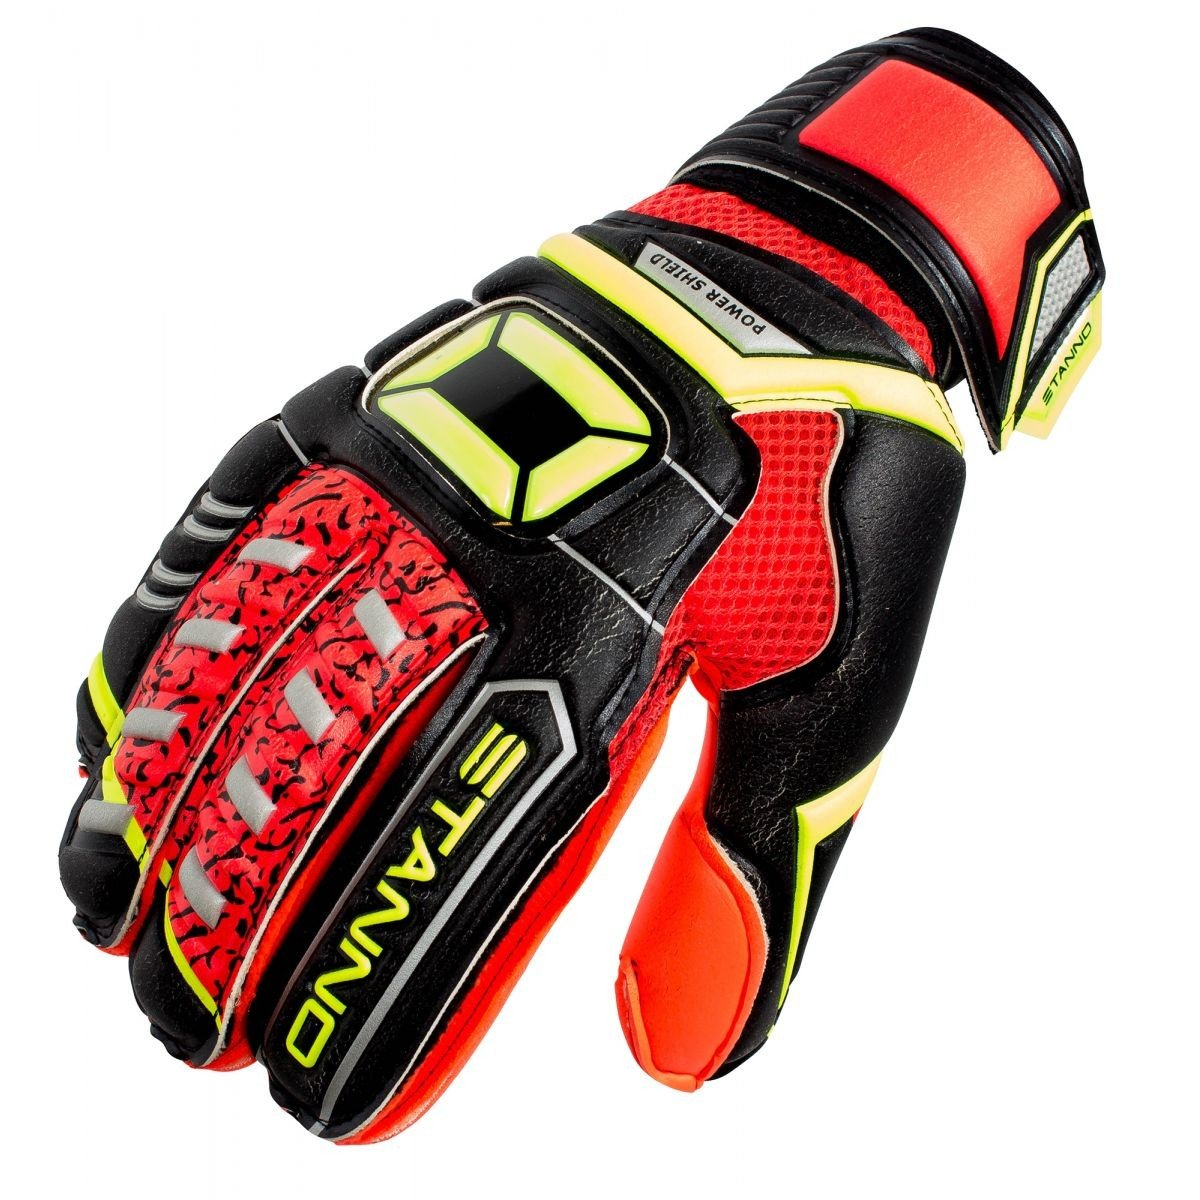 メンズStanno Power Shieldゴールキーパーグローブfor Soccer B01H2L4W2610